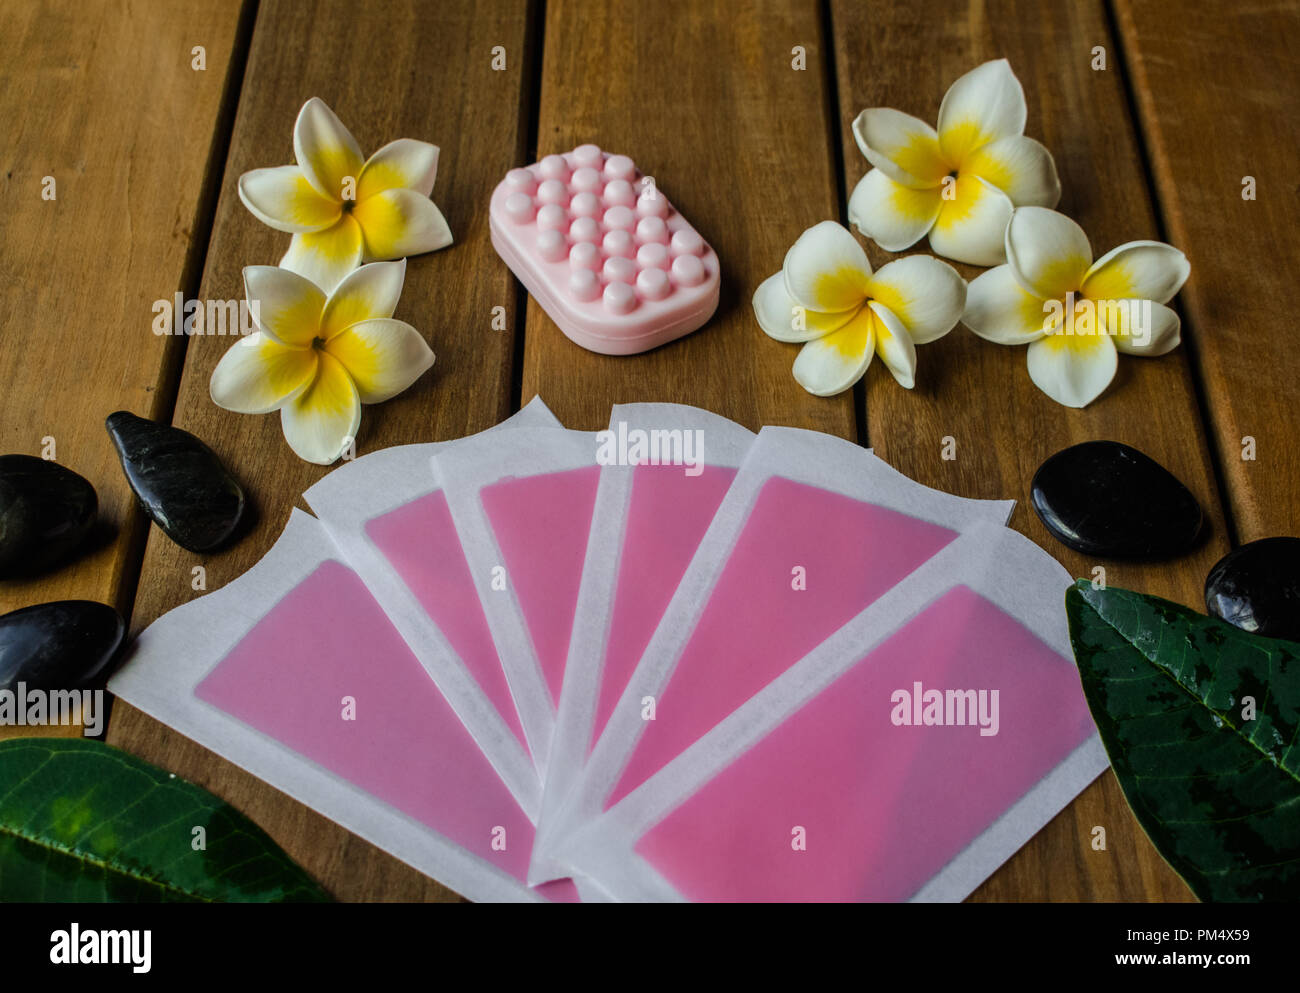 Pink cold wax strips and pink soap bar on wooden surface with plumeria flowers and black round stones - Stock Image